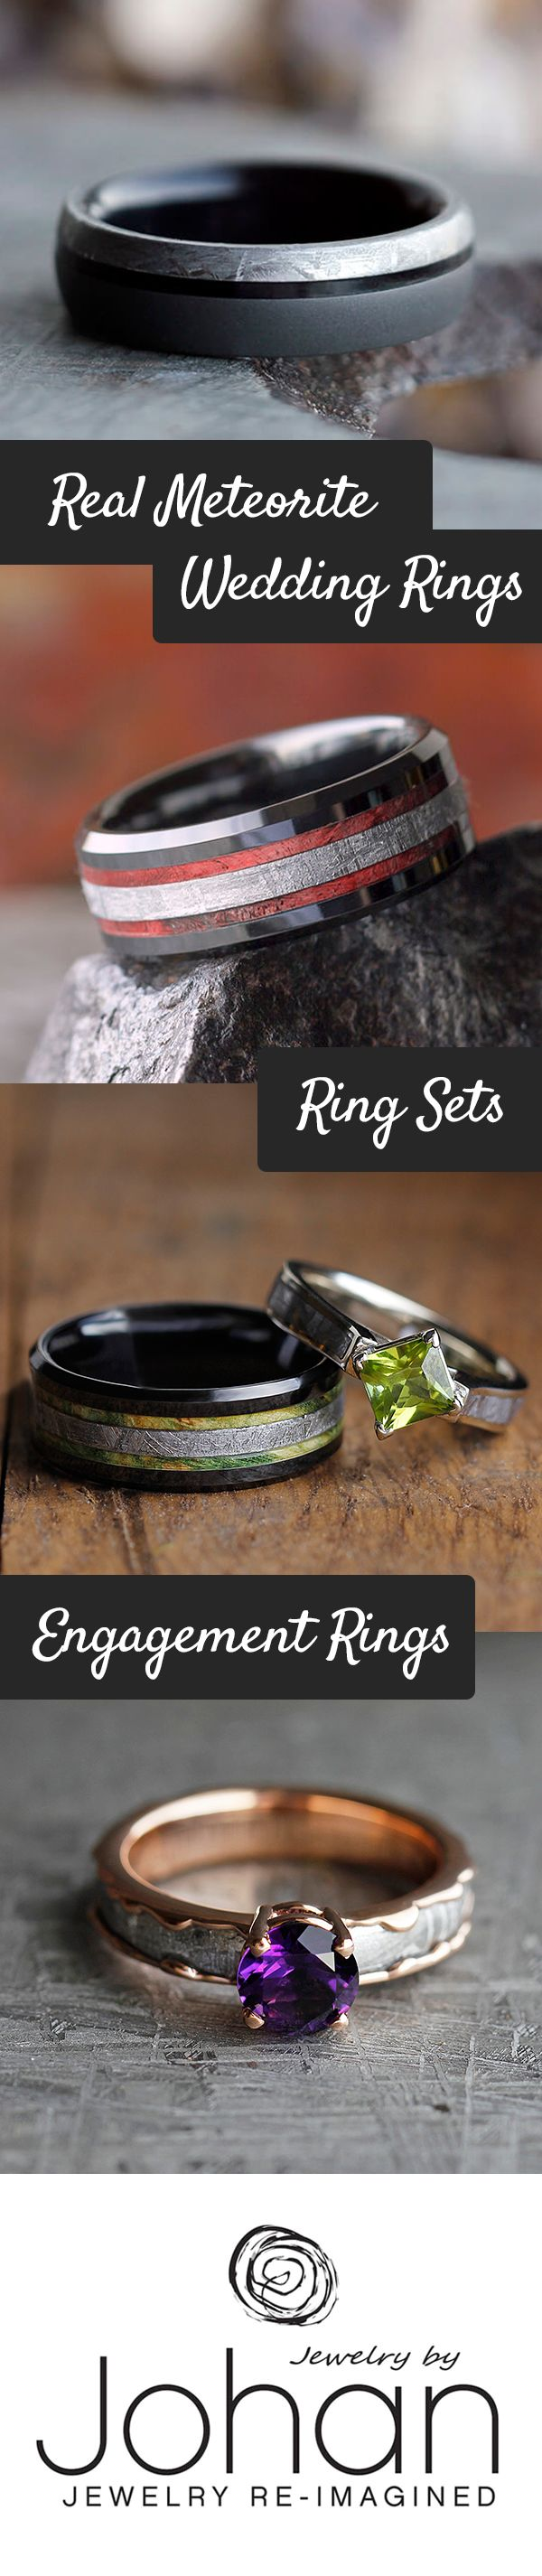 Handmade wedding rings created with genuine meteorite and combined with other unique materials like wood, antler, and dinosaur bone.